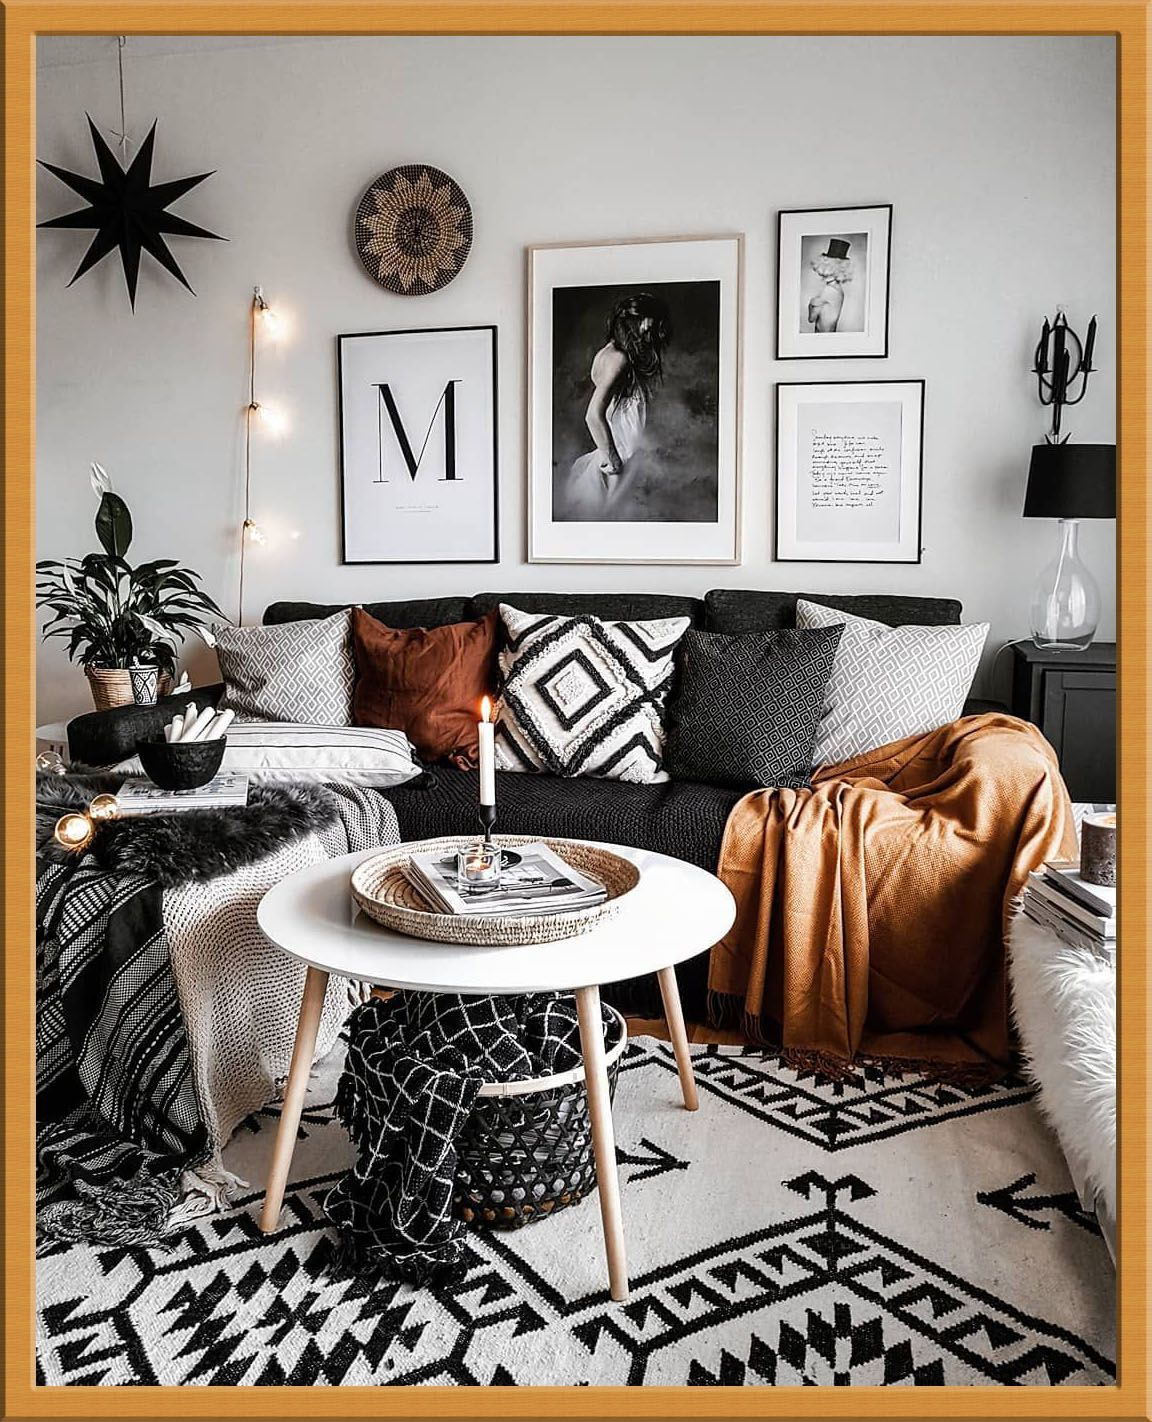 5 Secrets: How To Use Bohemian Homedecor To Create A Successful Business(Product)